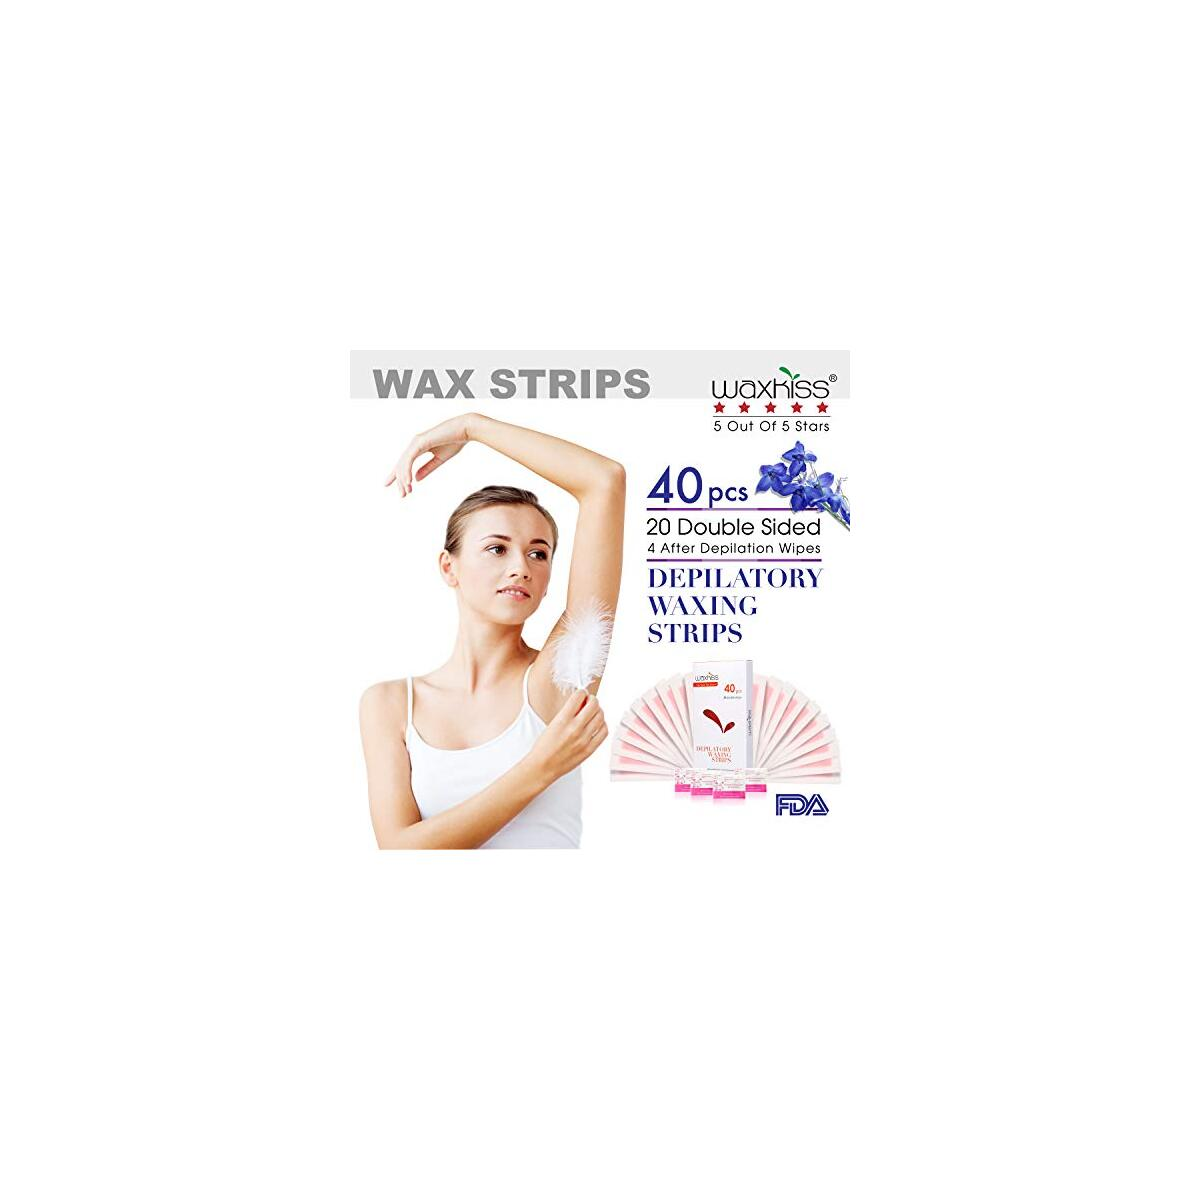 Waxkiss Wax Strips Facial Hair Removal Ready to Use Self Waxing Strips for Woman & Man - 40 Large Strips for Waxing